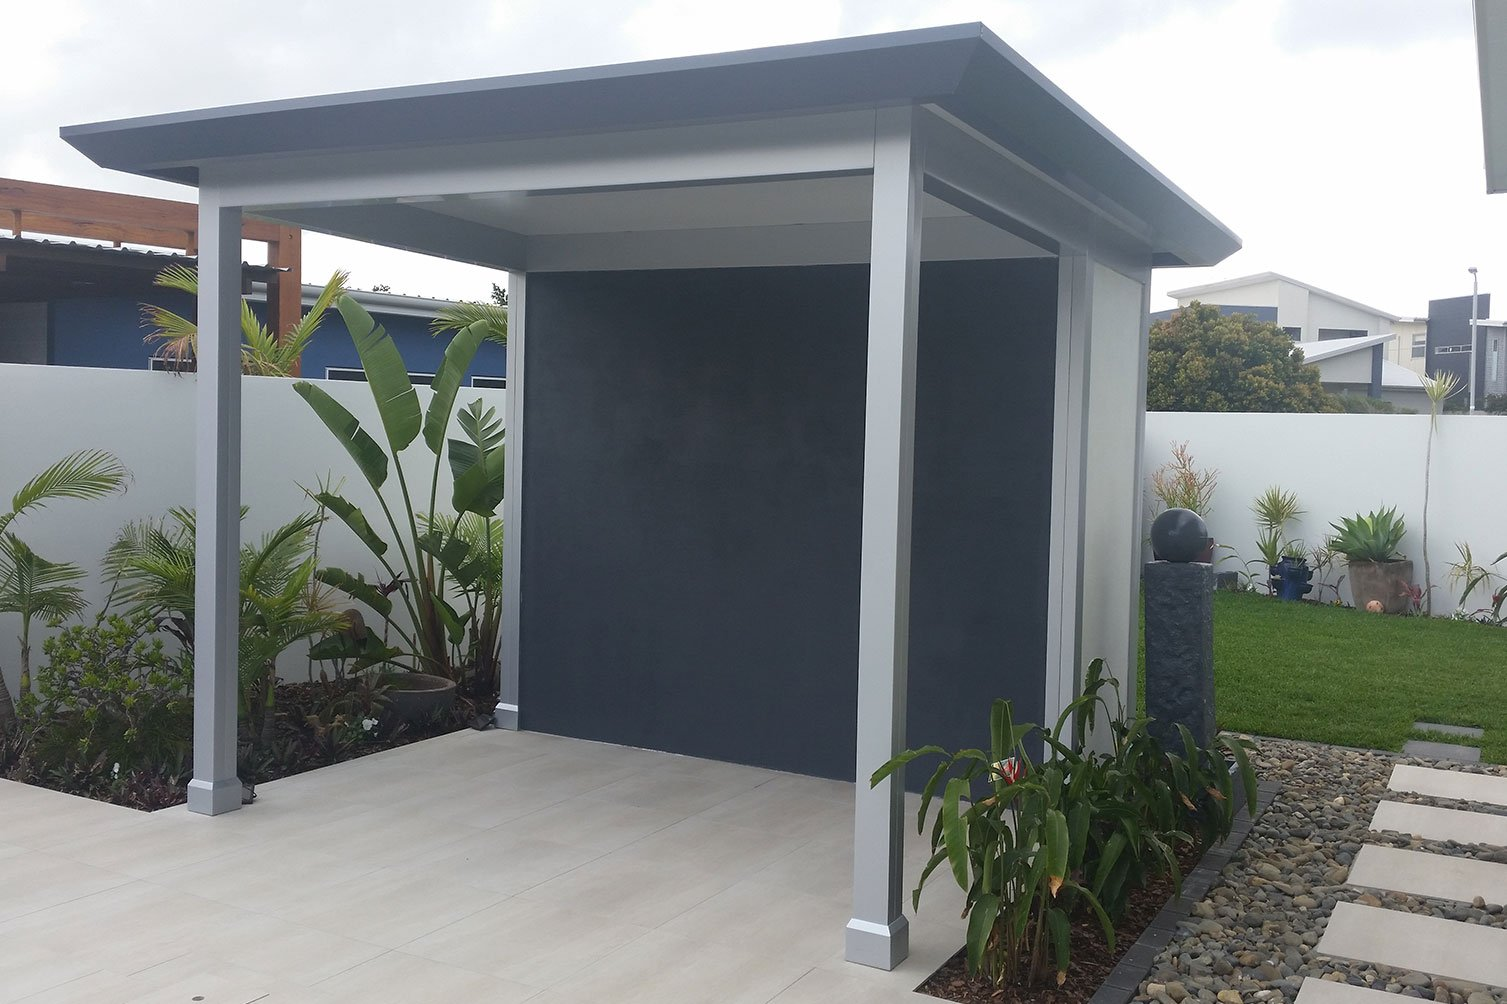 Coloured gray pavillion slique located at the center of the beautiful front yard in Goald Coast